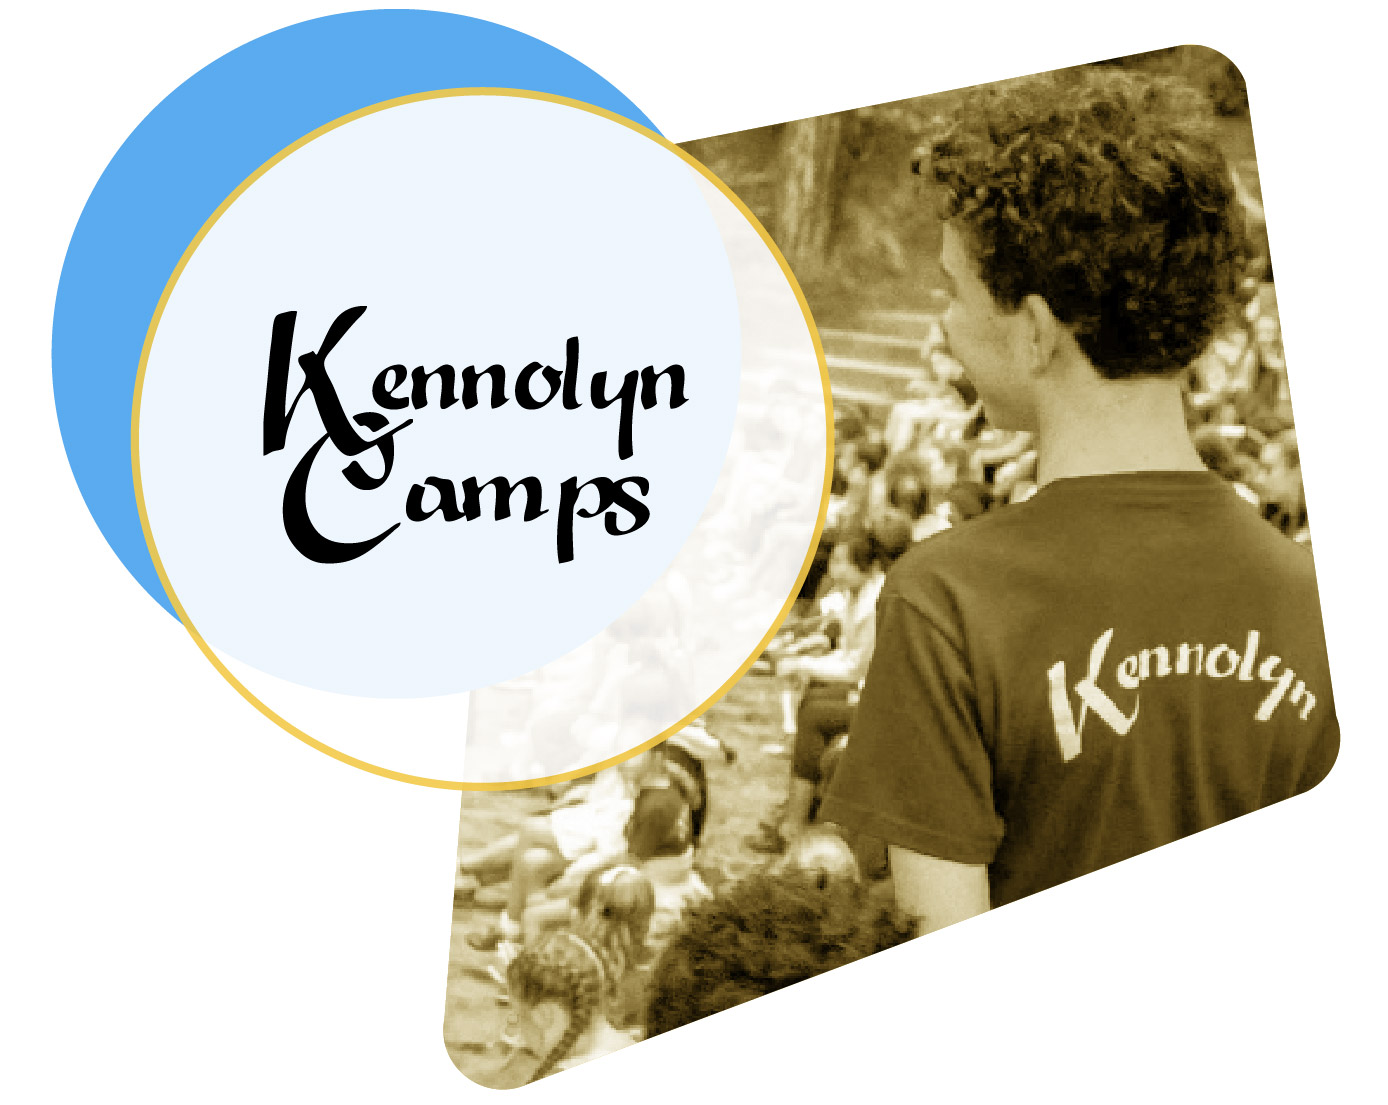 Kennolyn Camps using Olark live chat